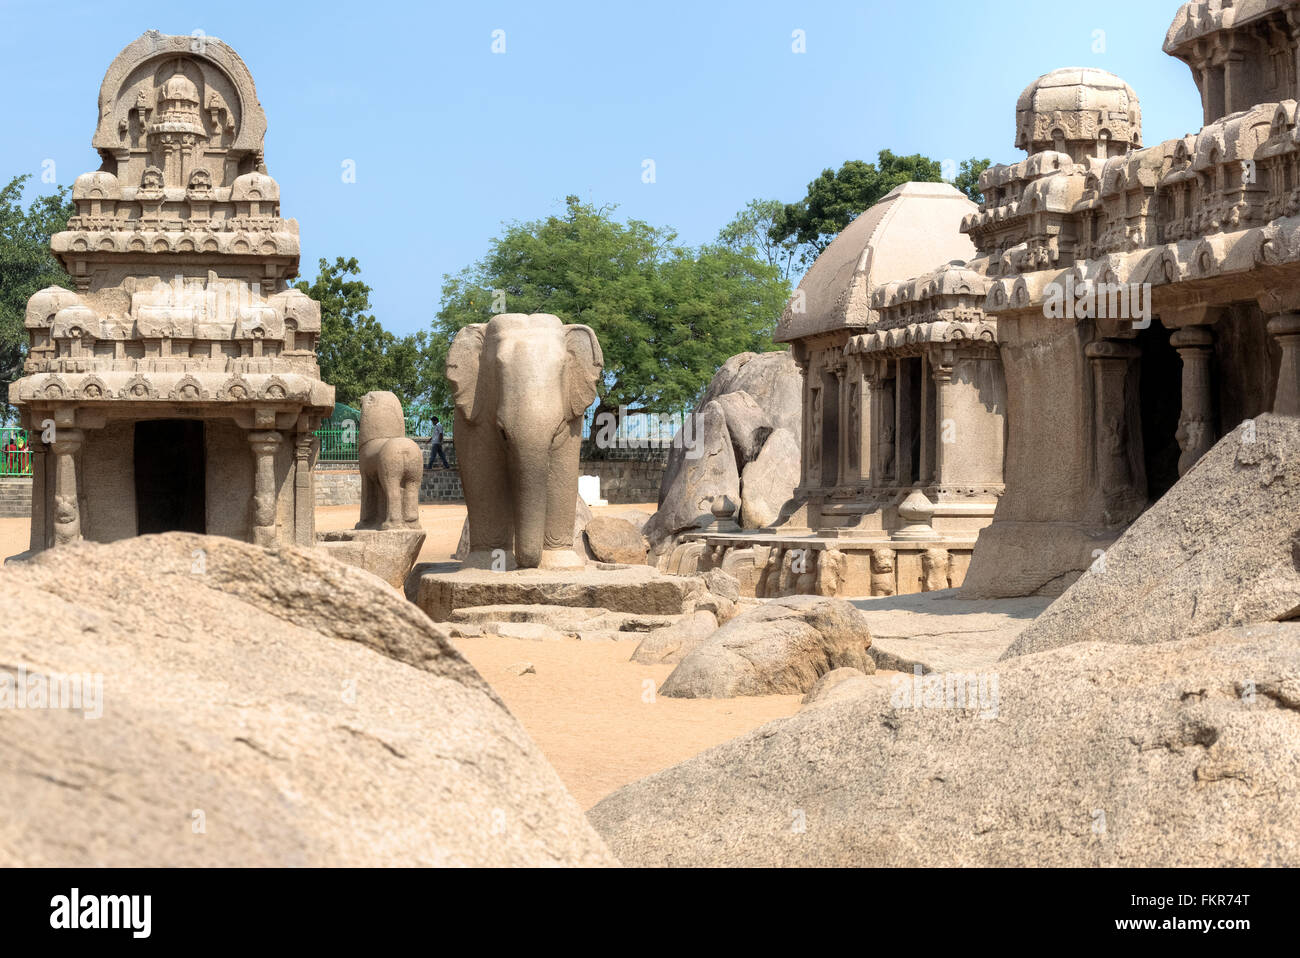 Pancha Rathas, Mahabalipuram, Kanchipuram, Tamil Nadu, India Stock Photo